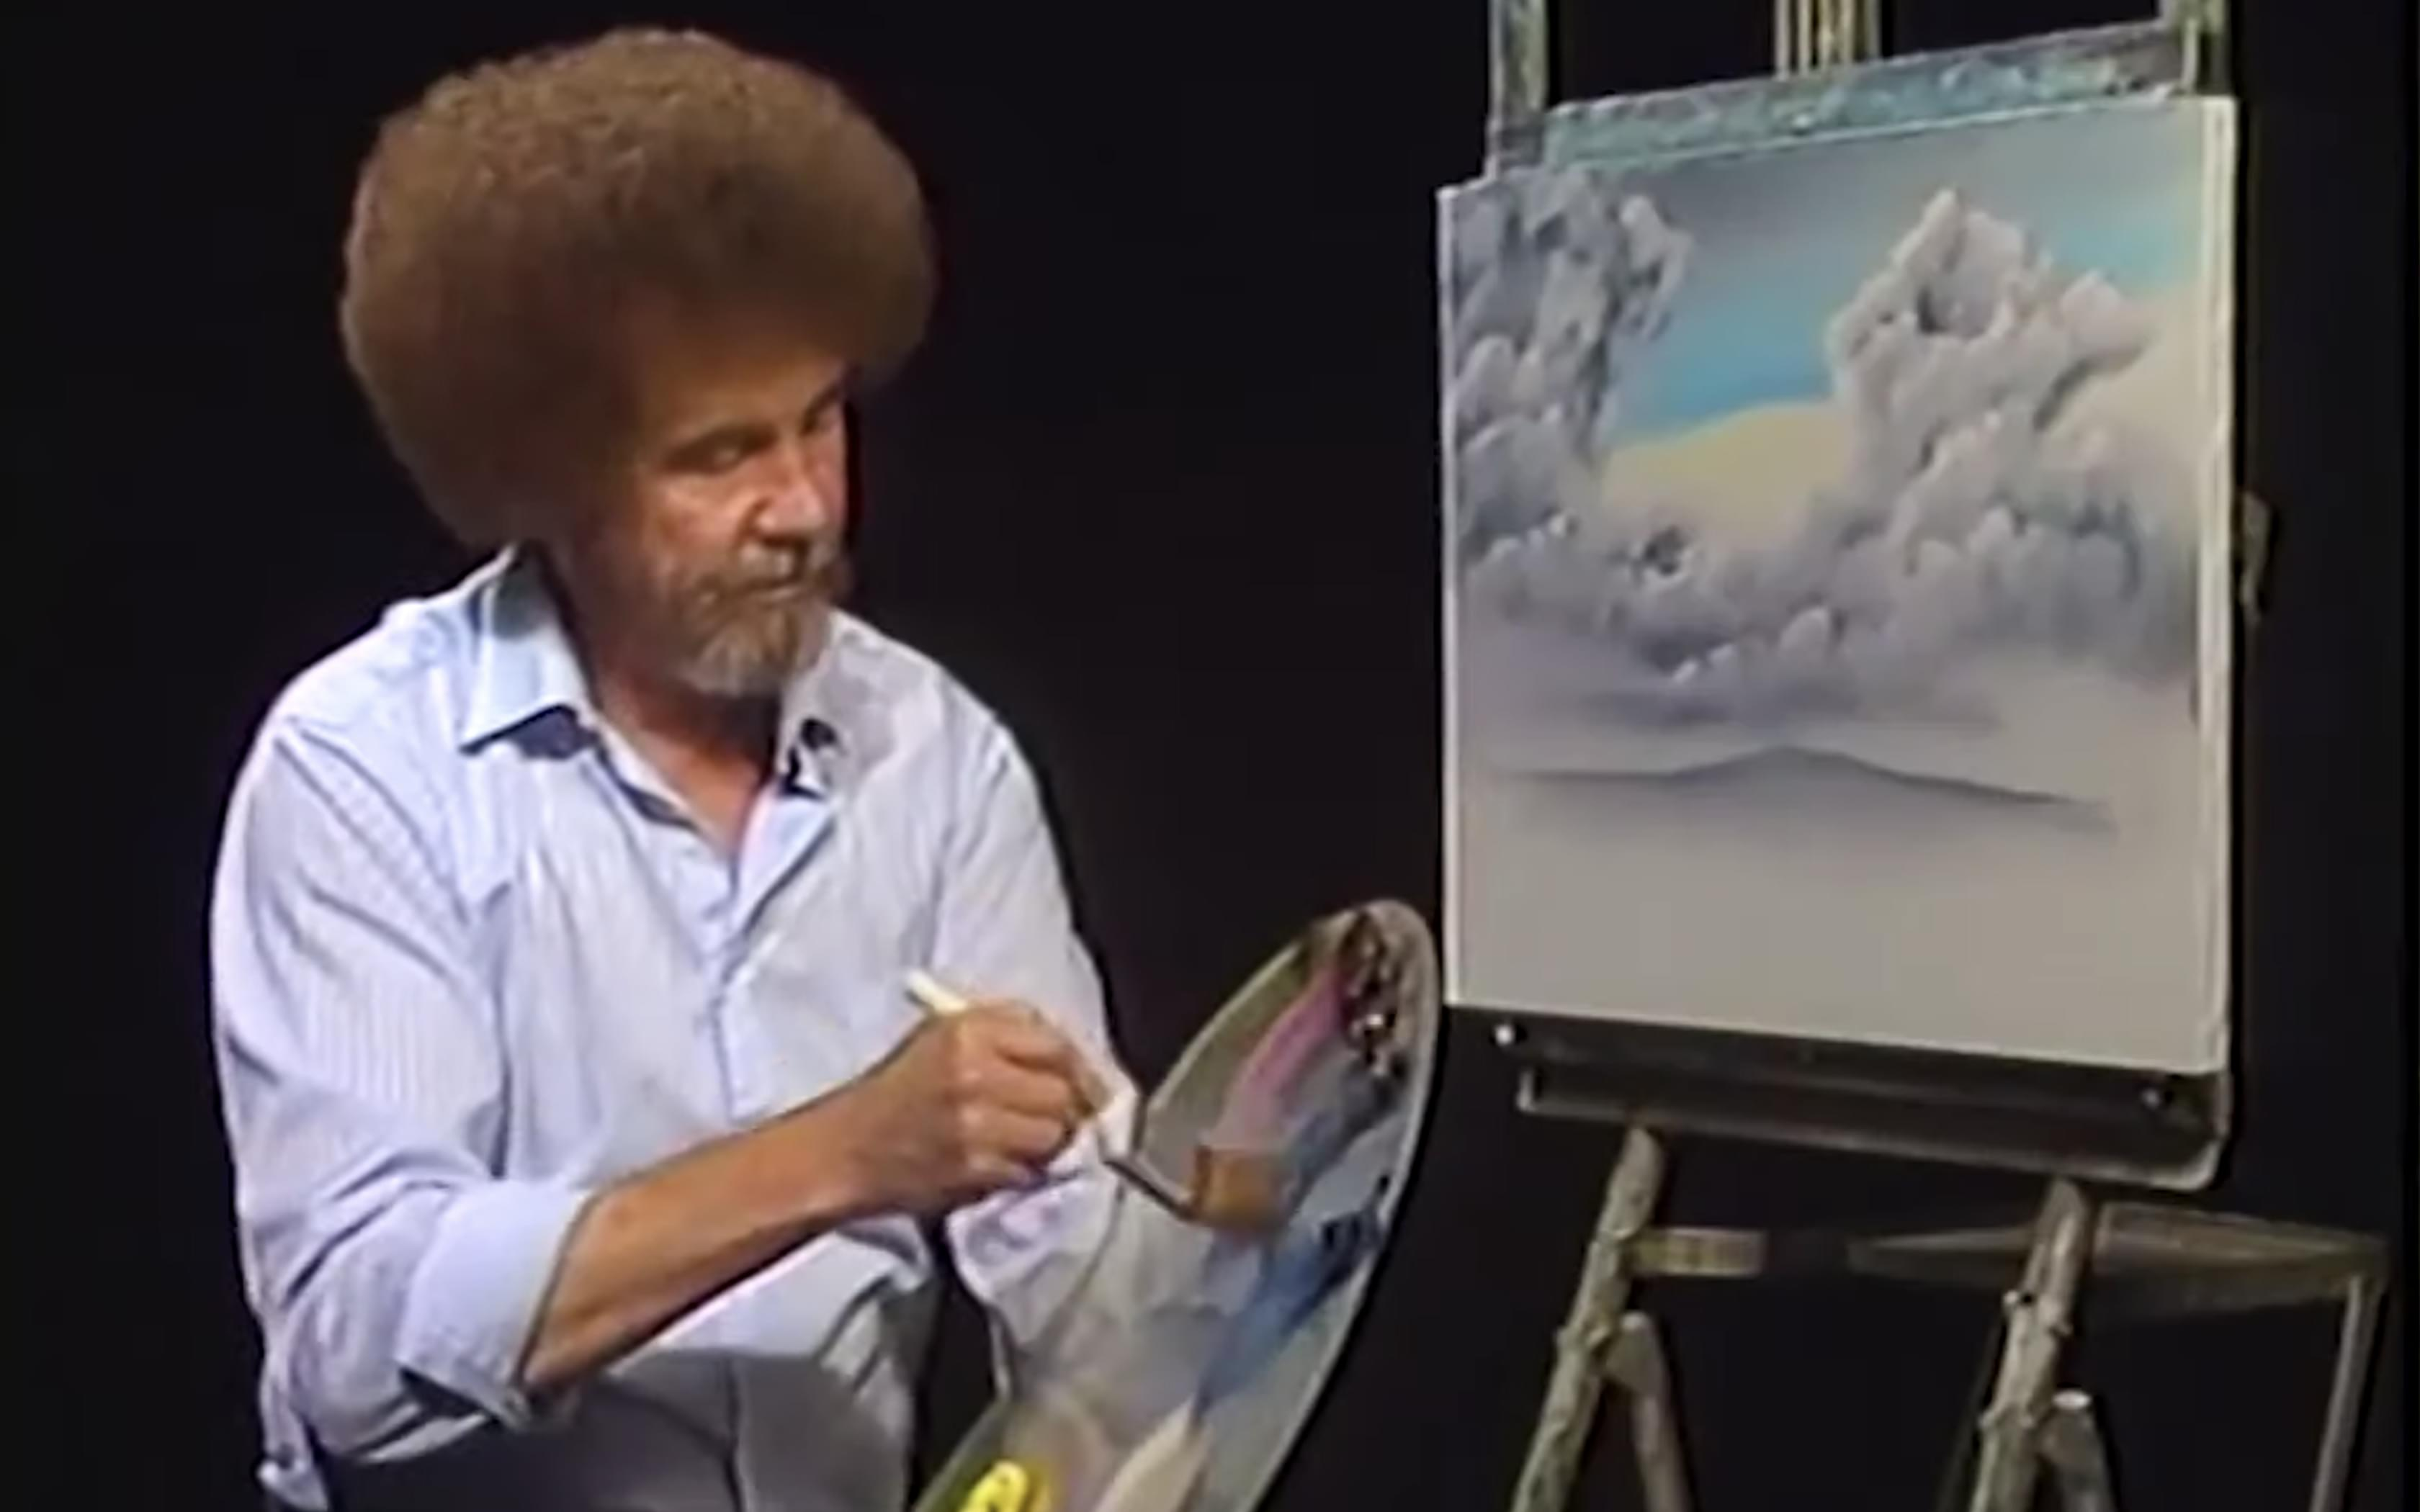 VIDEO: Where did all those Bob Ross paintings end up after his shows?